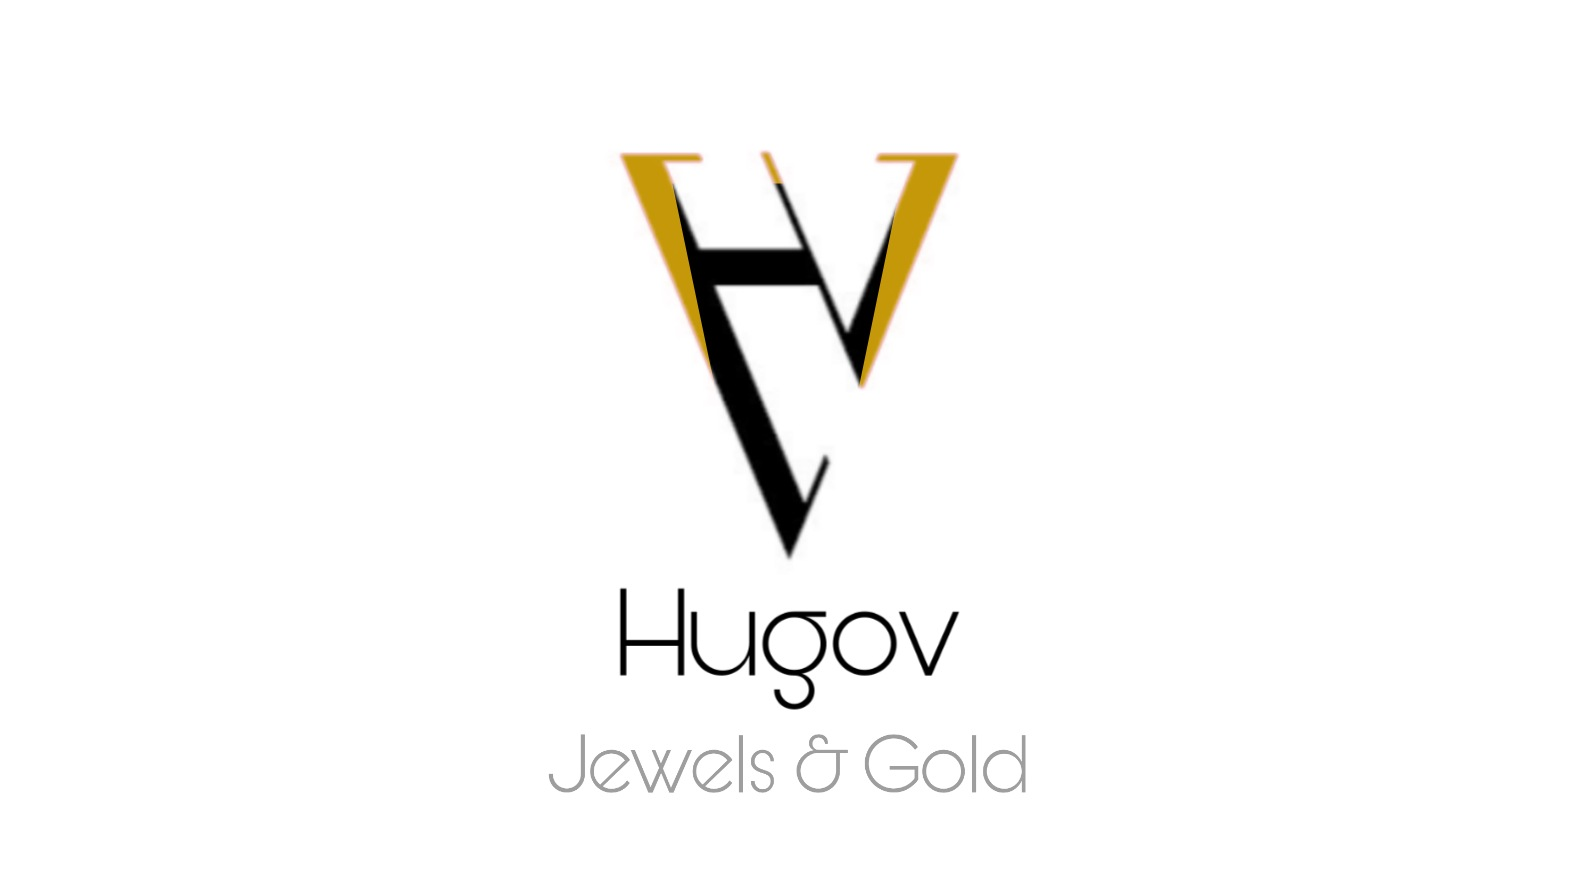 Hugov Jewels & Gold